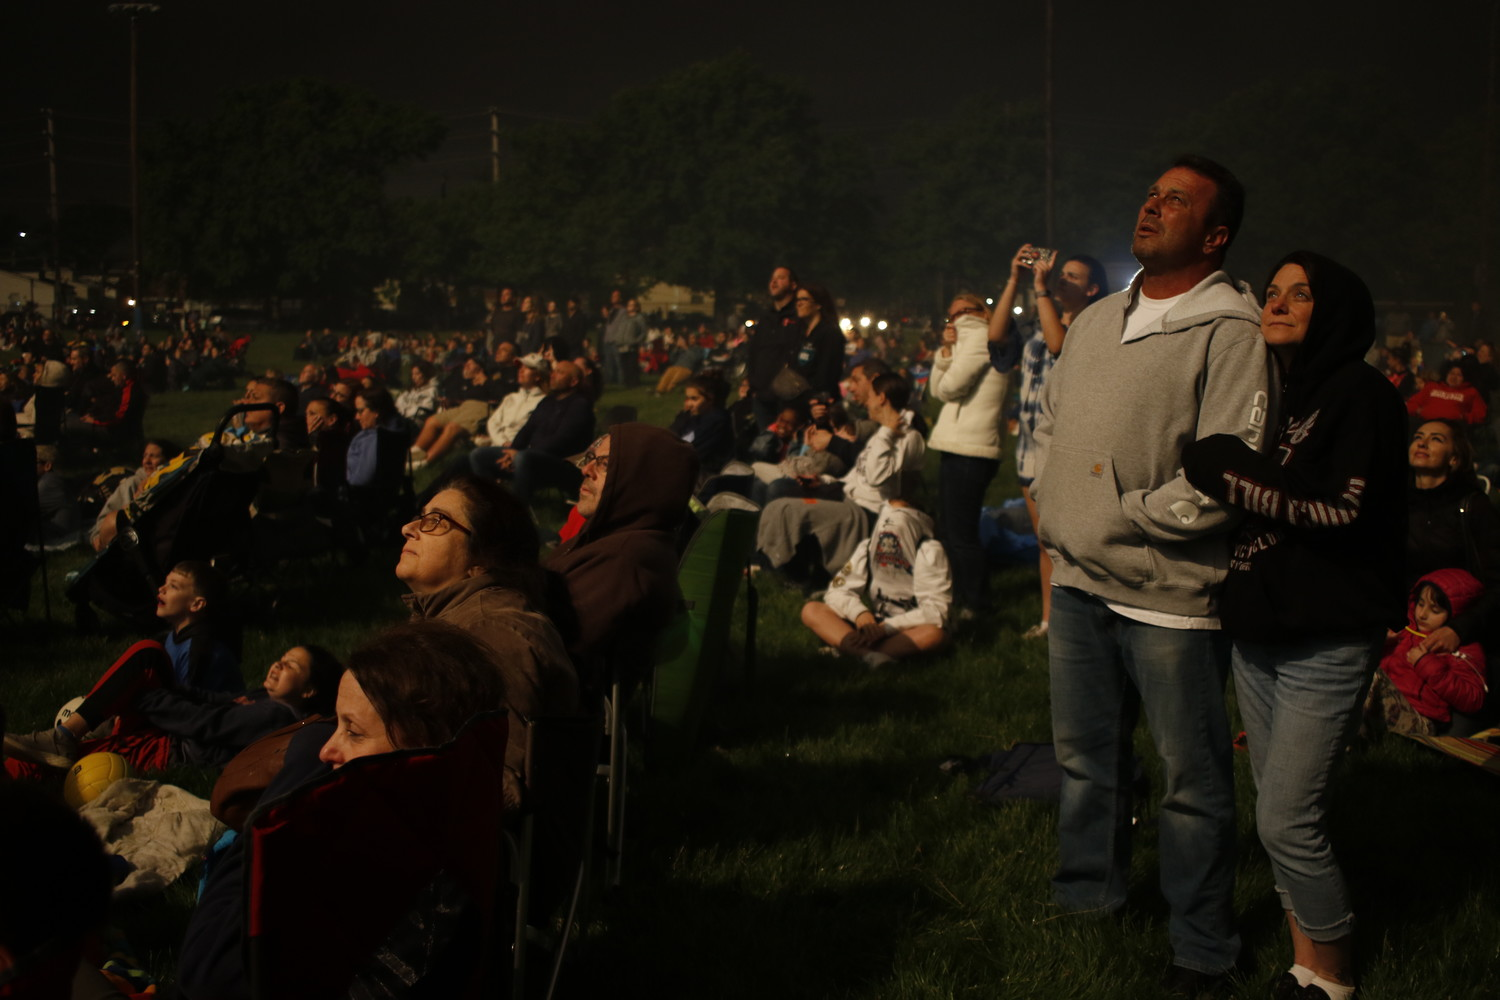 About 3,000 residents came to the Patriots' Day fireworks show at Greis Park on Memorial Day. Barbara Hieronymus and Robert Livingstone, far right, watched the grand finale in awe.